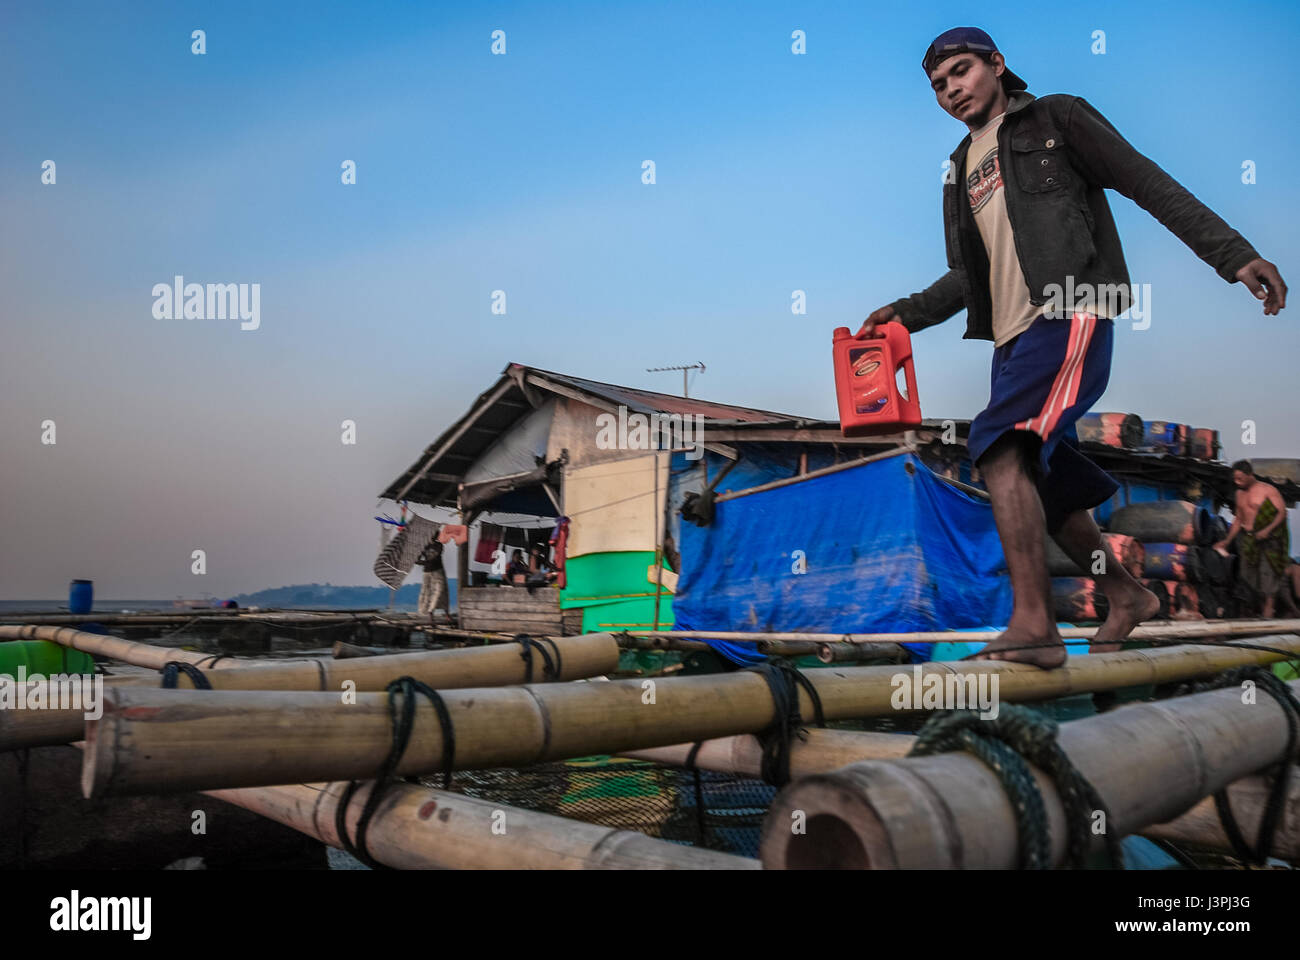 A boat motorist carries a plastic oil can while stepping on bamboo platform in the floating village of Jatiluhur - Stock Image